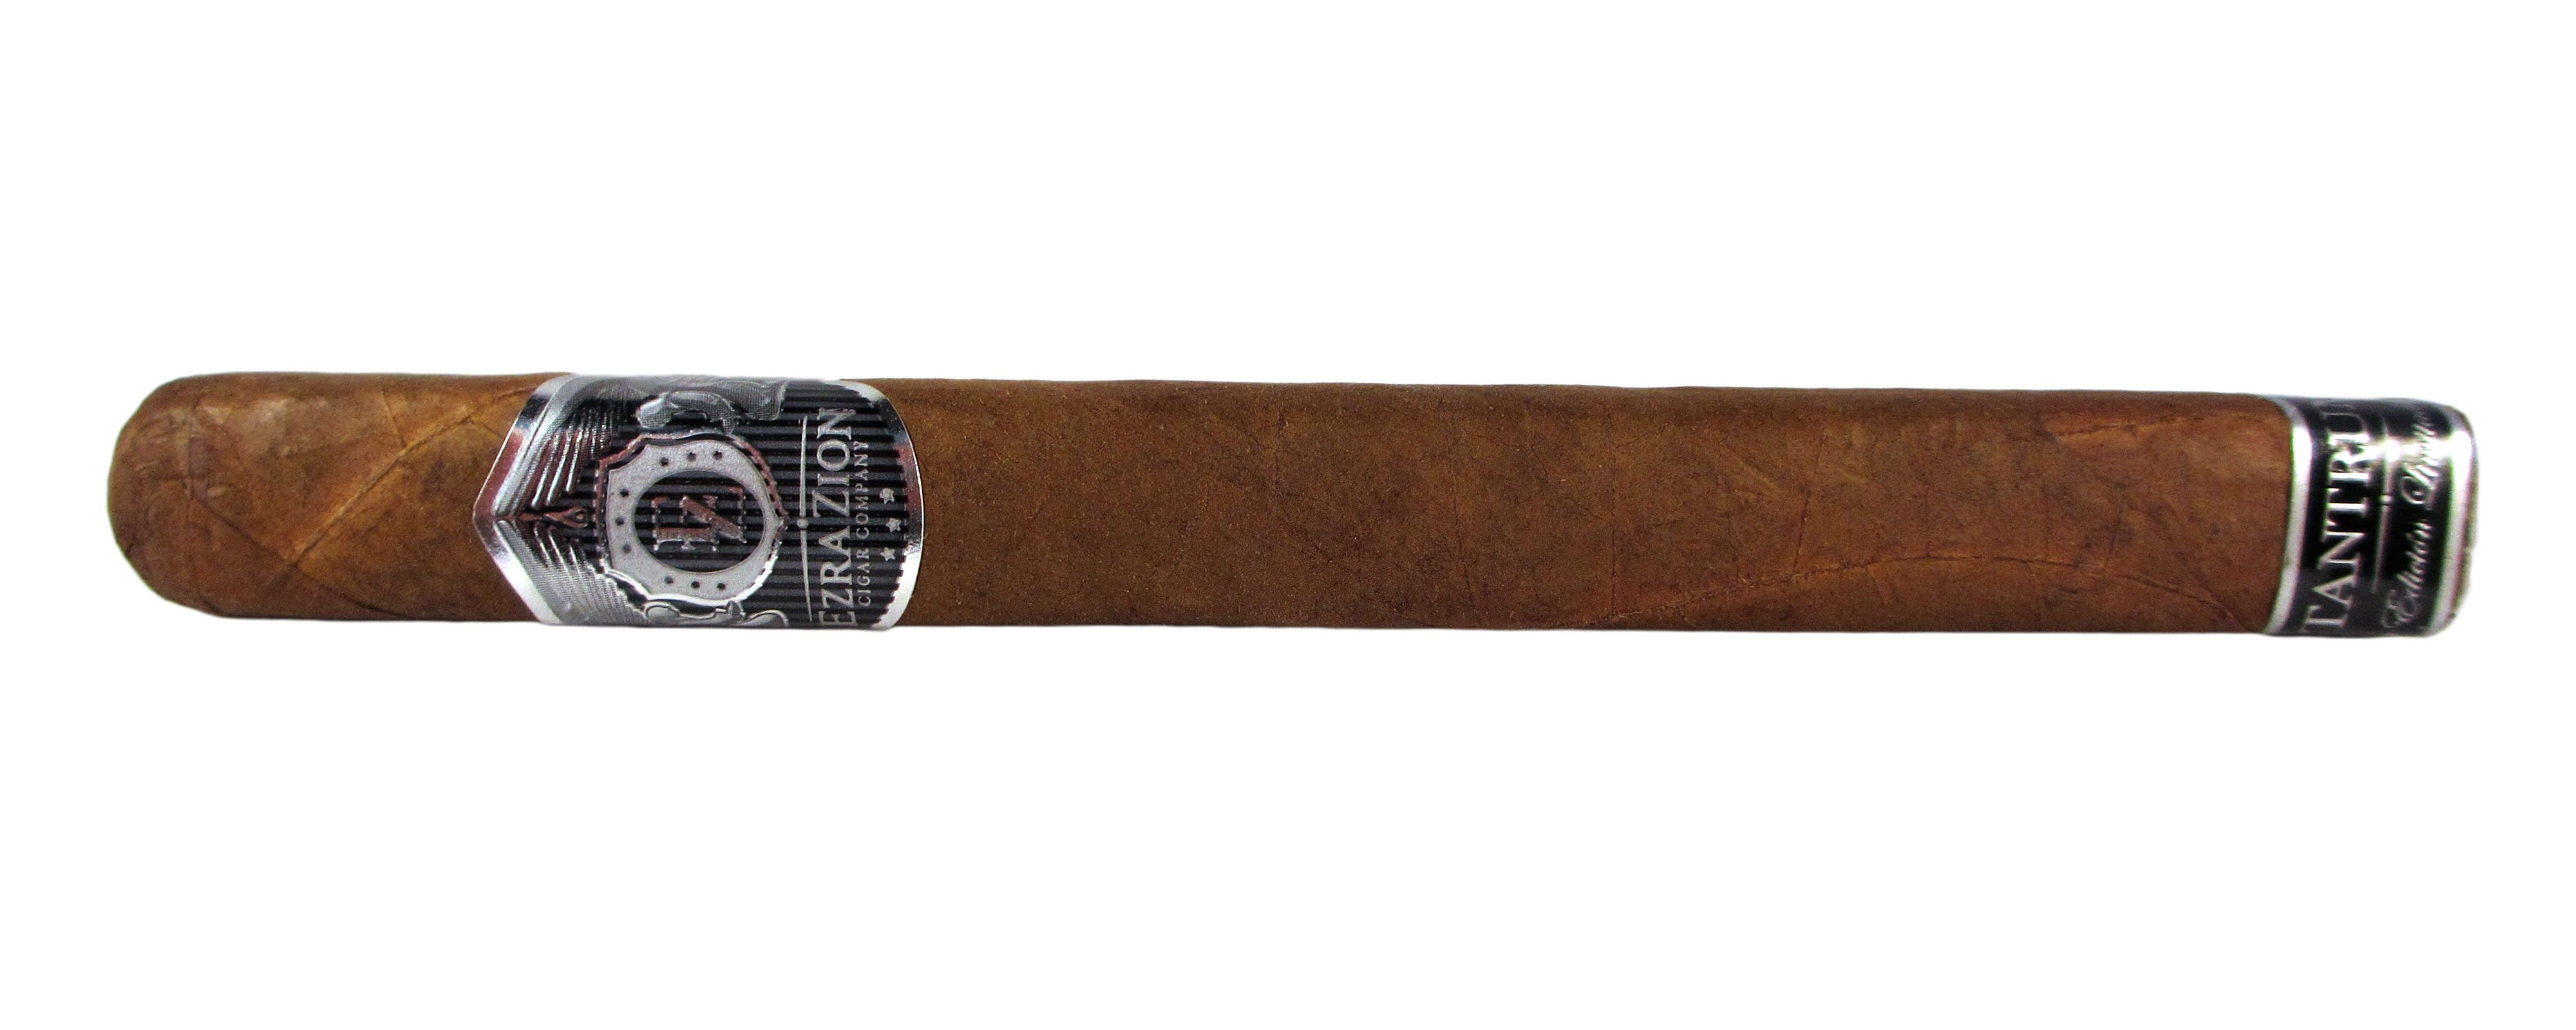 e7385c0f99fa7 Blind Cigar Review  Ezra Zion